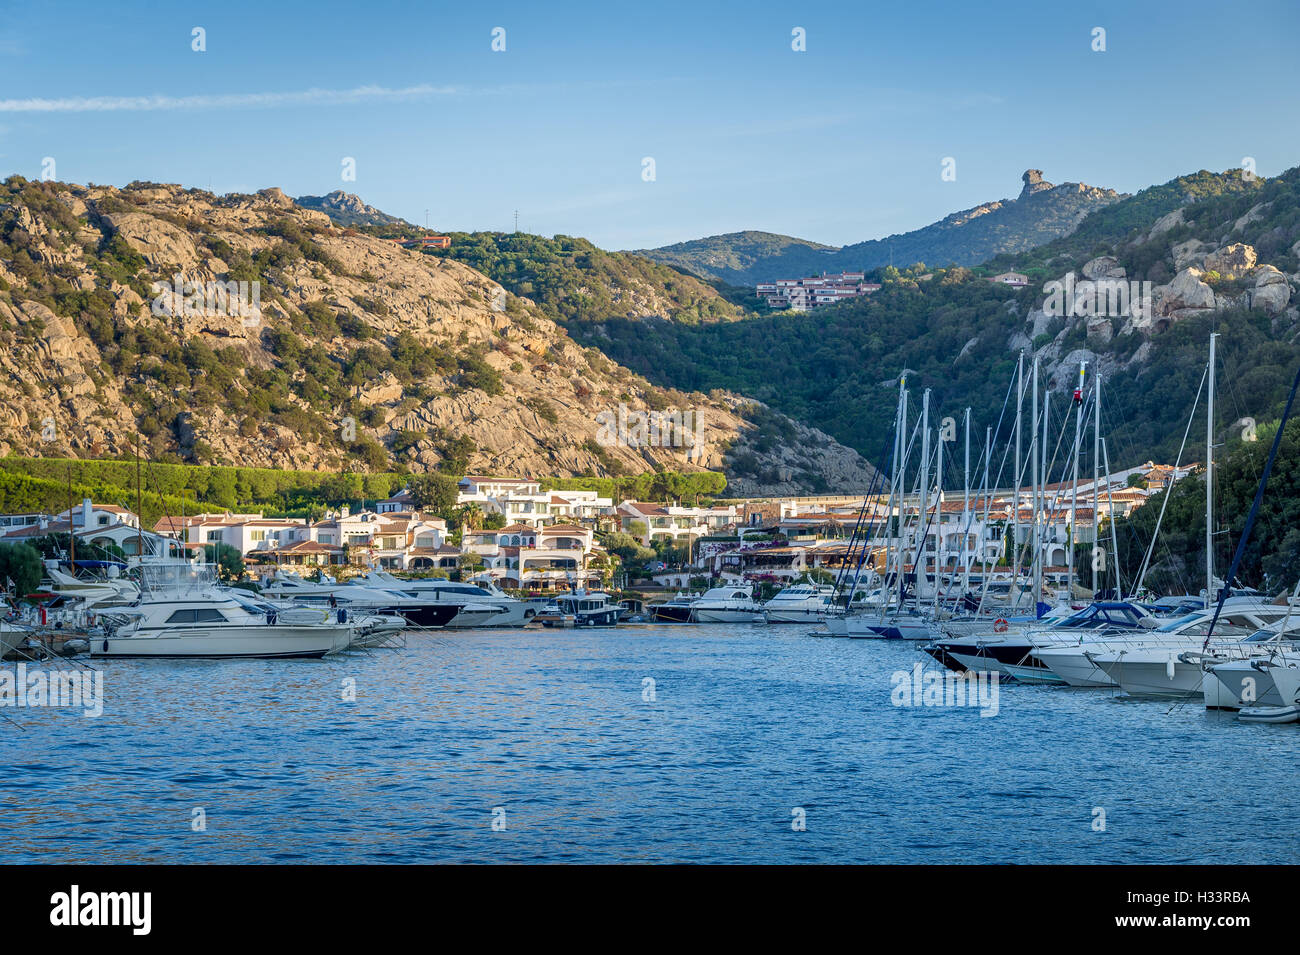 Poltu Quatu luxury resort and marina, Sardinia, Italy. - Stock Image